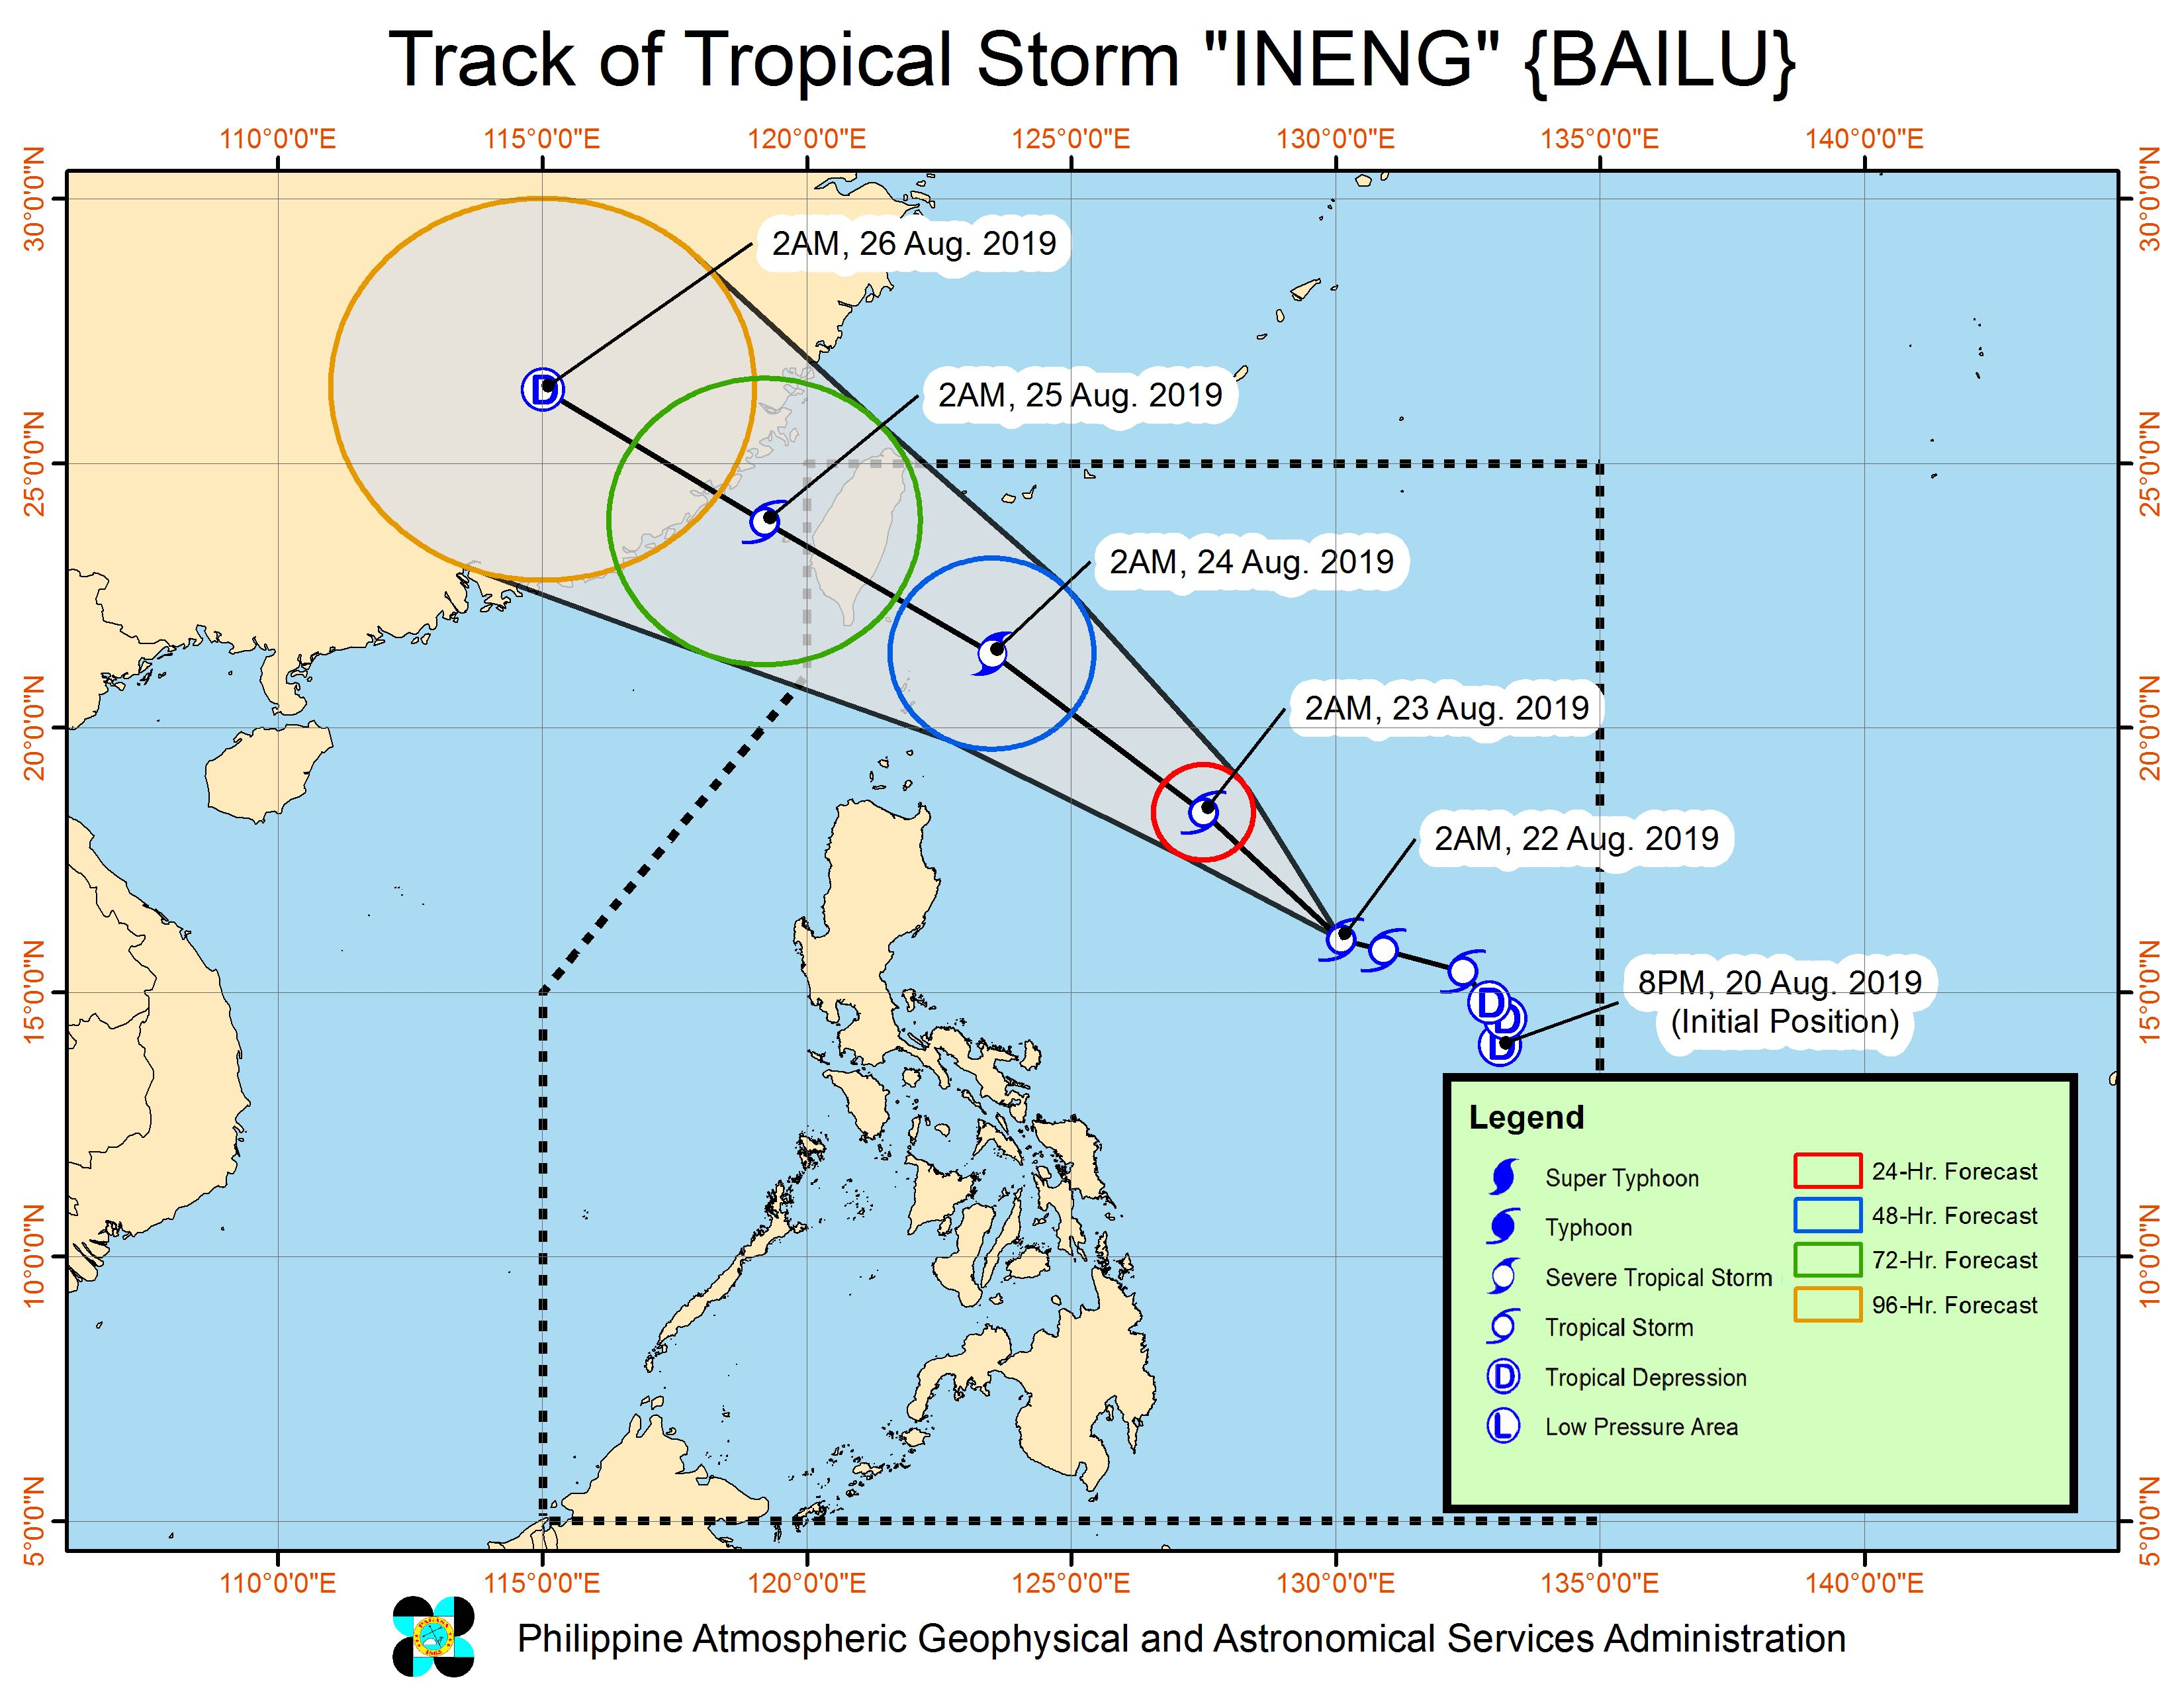 Forecast track of Tropical Storm Ineng (Bailu) as of August 22, 2019, 5 am. Image from PAGASA